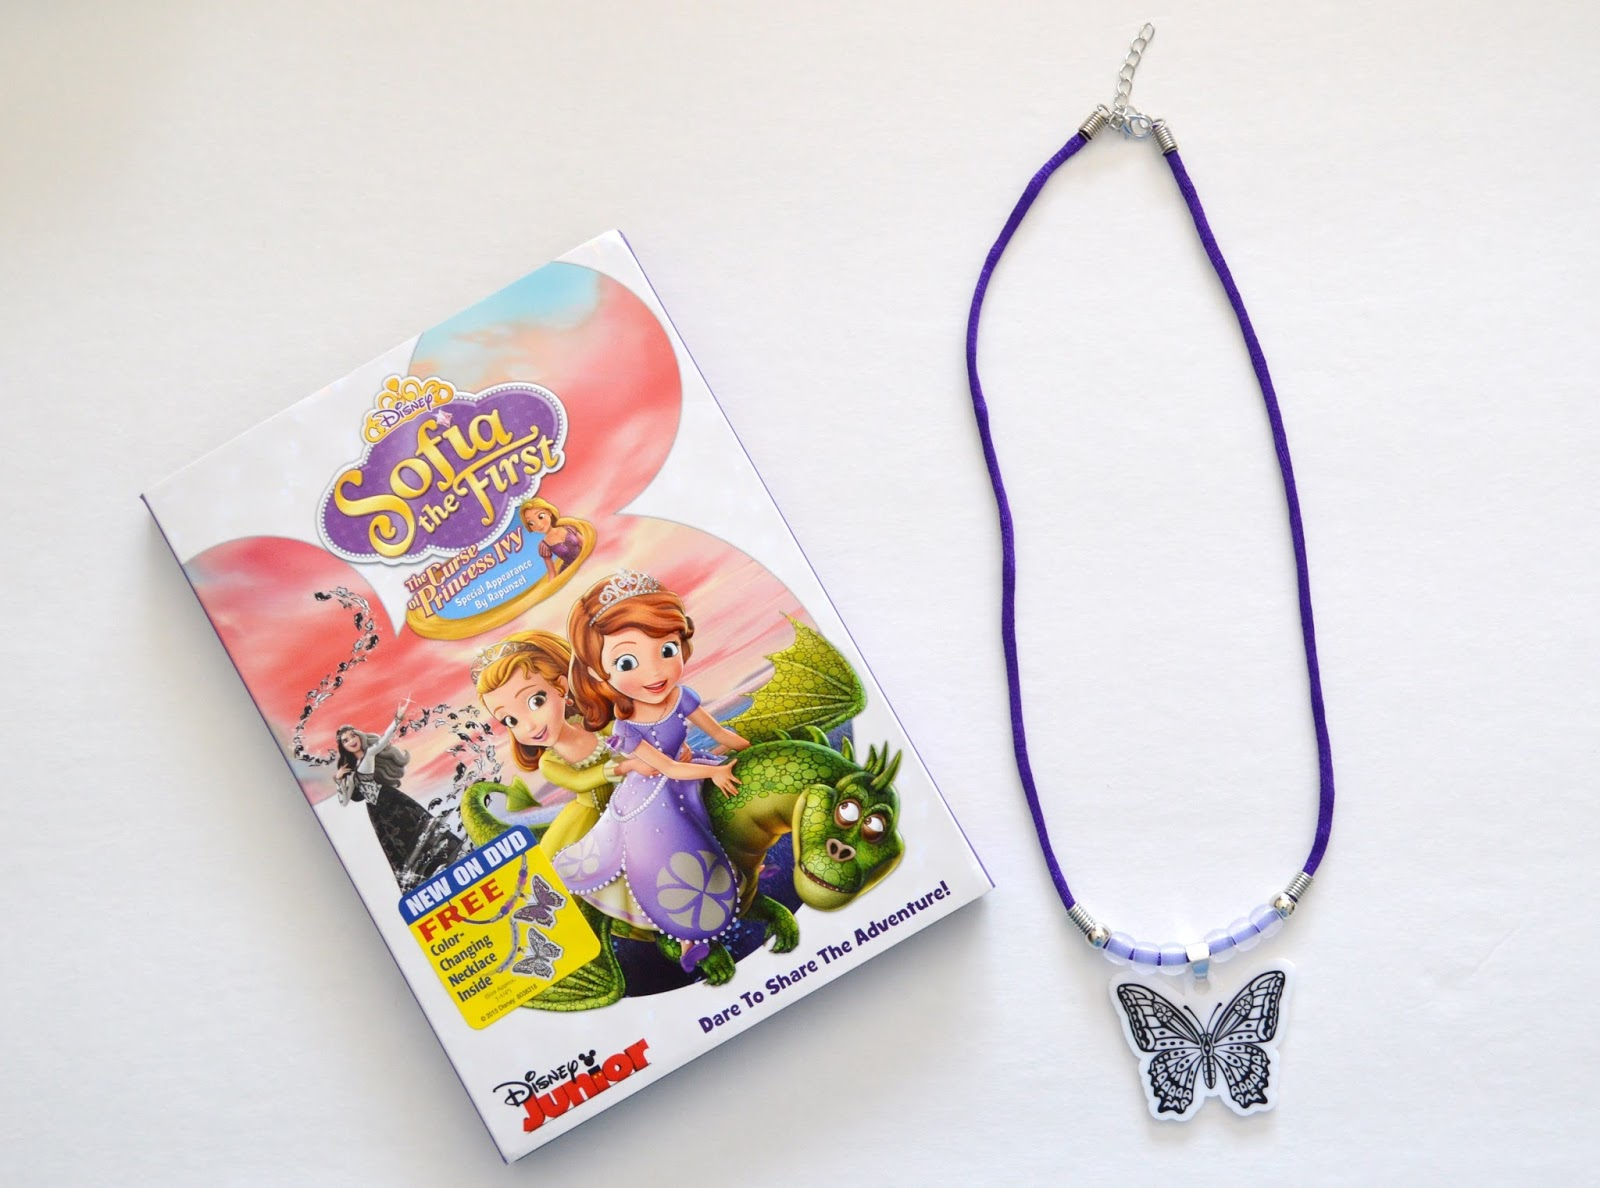 Sofia The First: The Curse of Princess Ivy DVD and Pendant